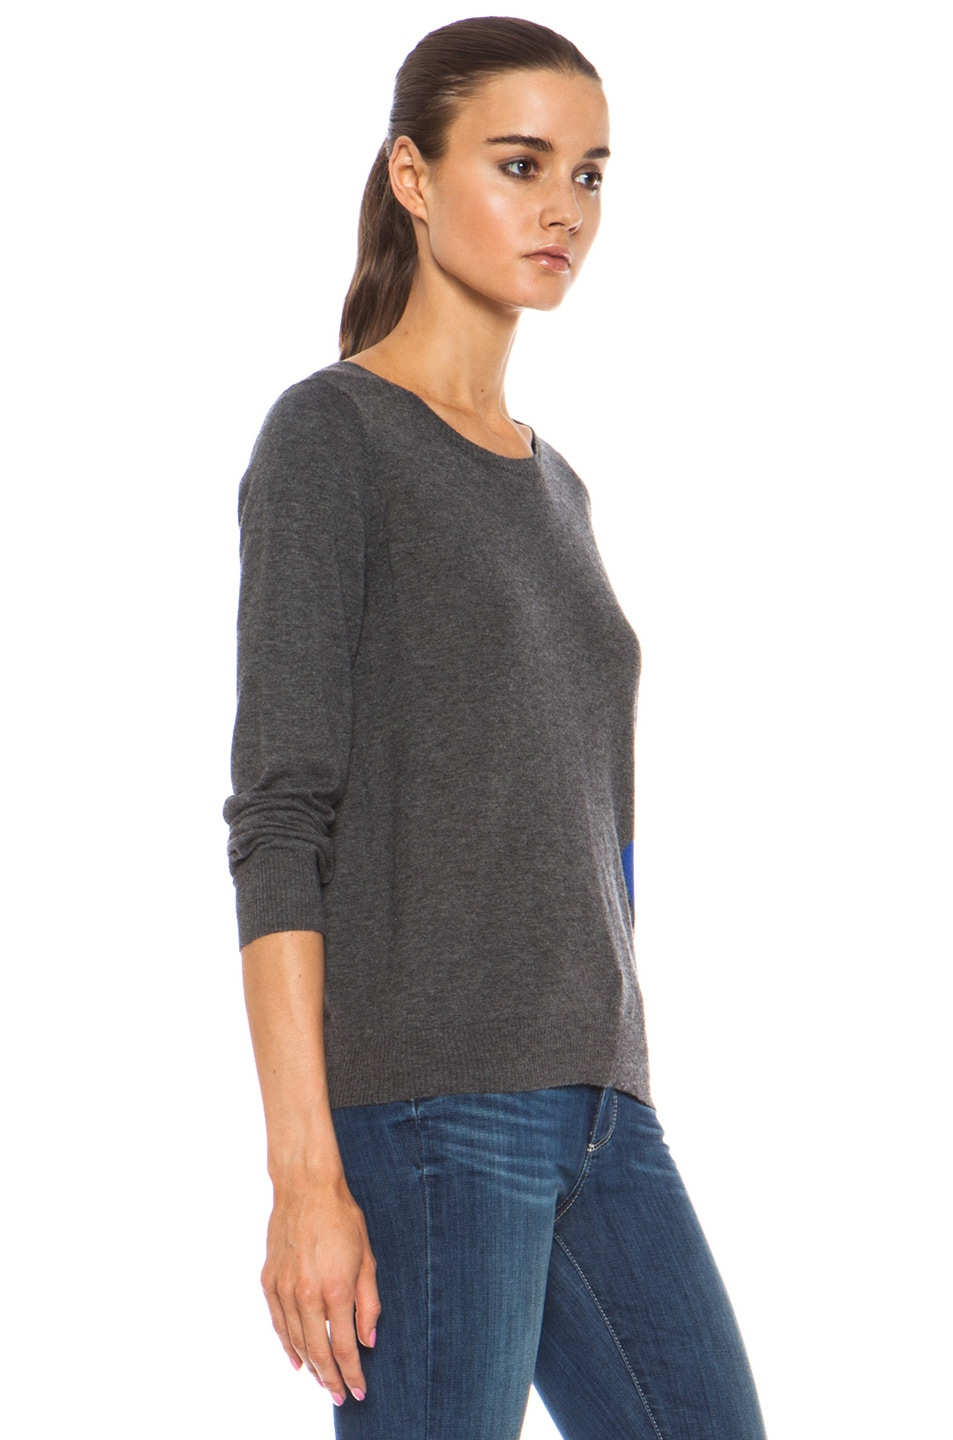 Image 3 of Golden Goose Heart Cashmere Pullover with Button Back Detail in Melange Grey